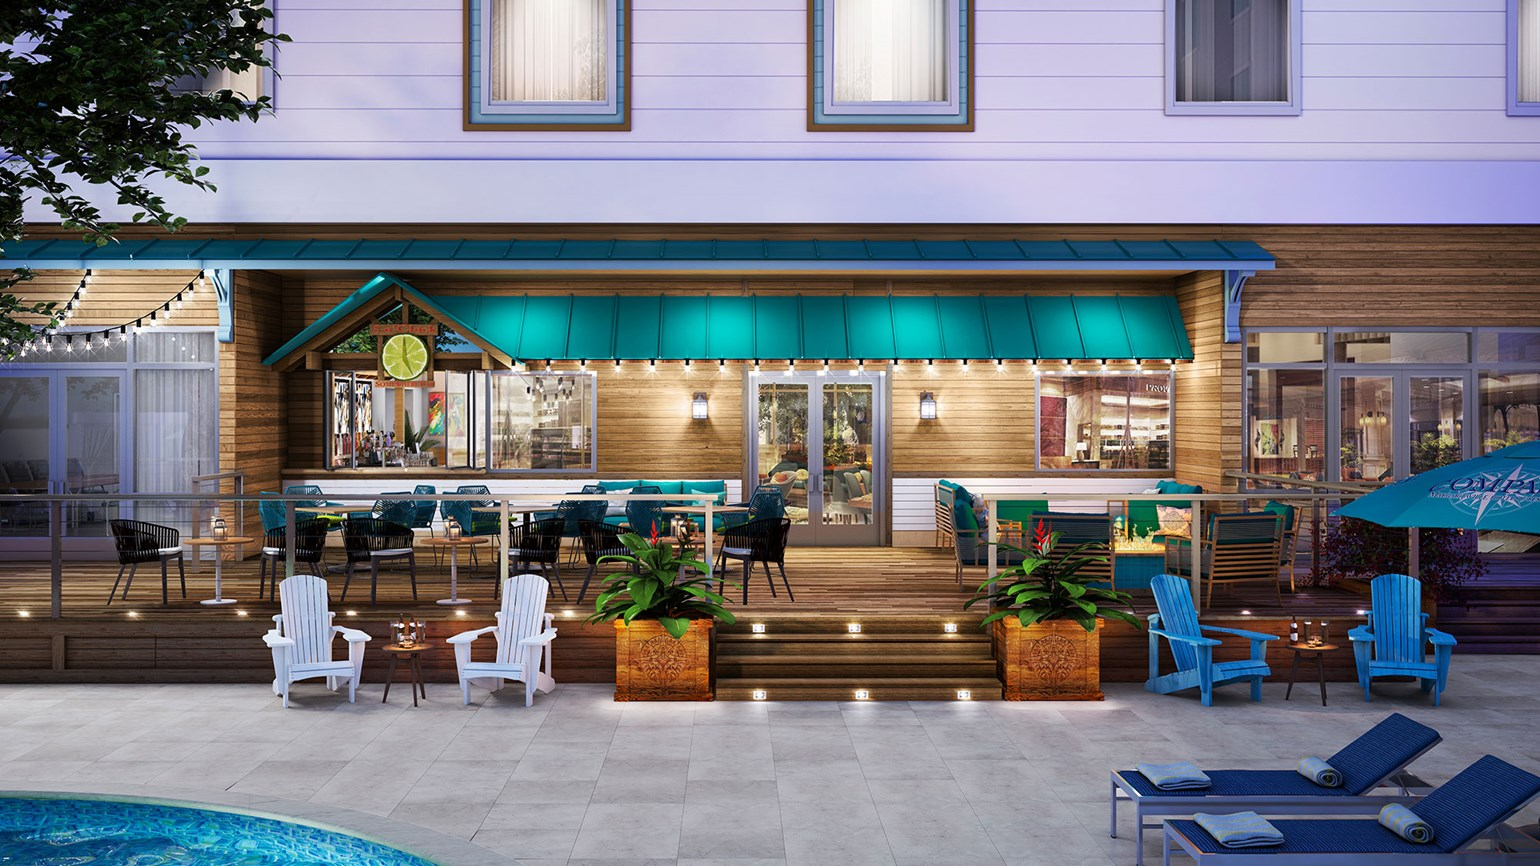 First Compass by Margaritaville set to open in Fla.